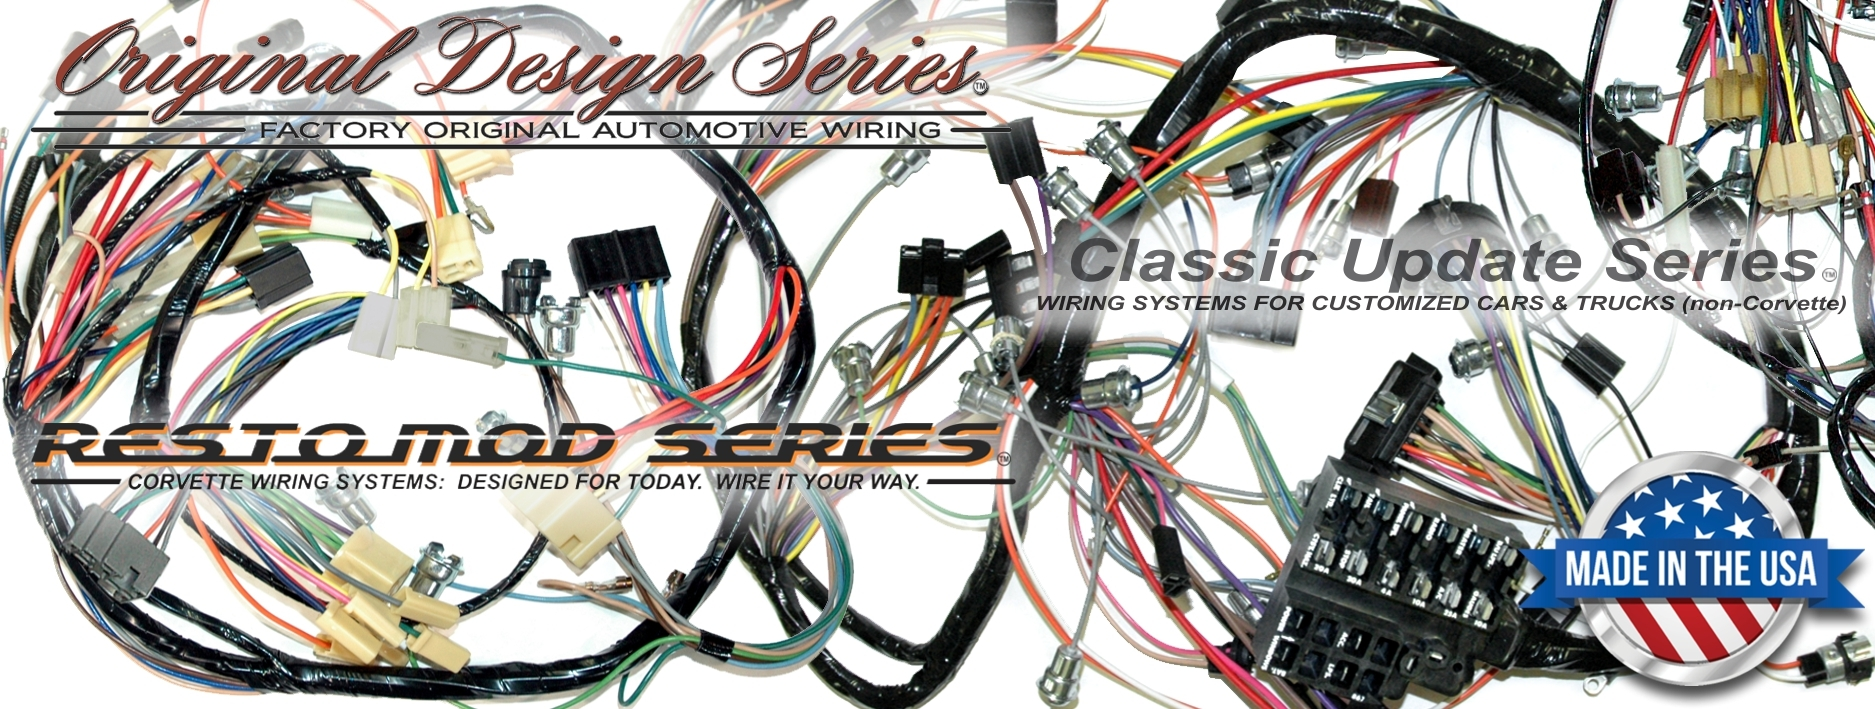 new header wiring_harnesses exact oem reproduction wiring harnesses and restomod wiring c3 corvette engine wiring harness at soozxer.org